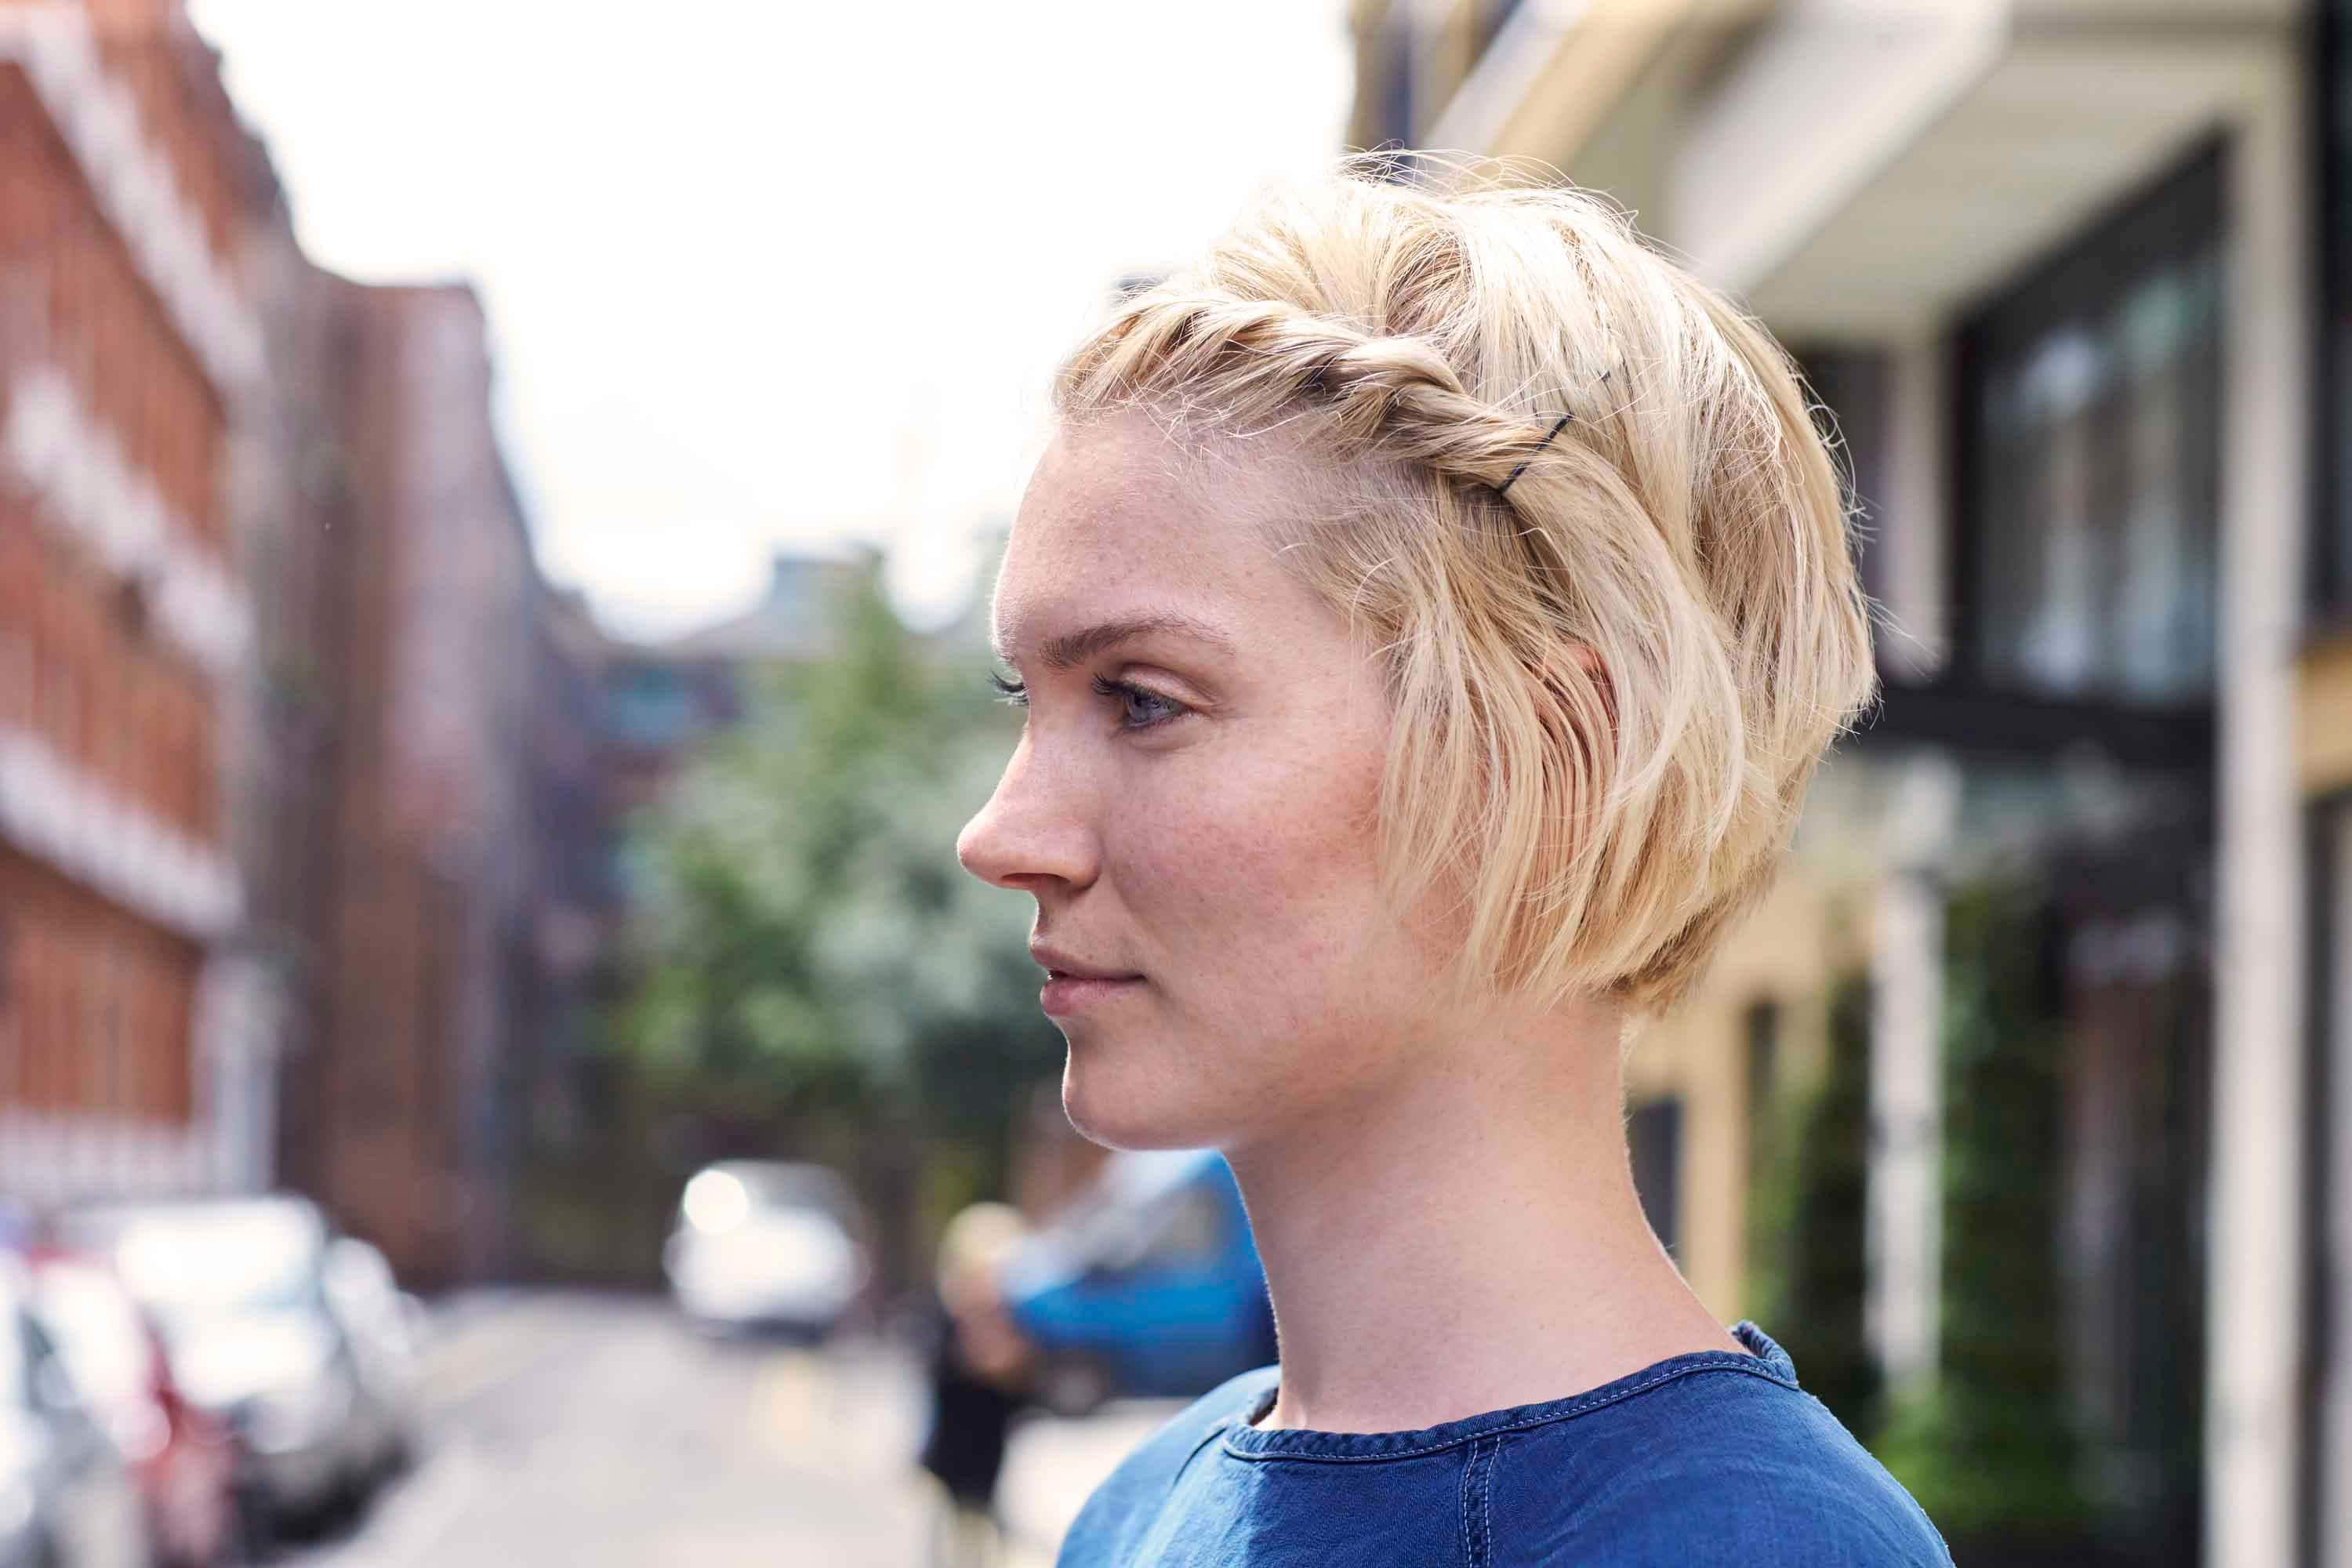 Summer Hairstyles, Hair Trends And Products To Try Within Summer Hairstyles For Short Hair (View 22 of 25)